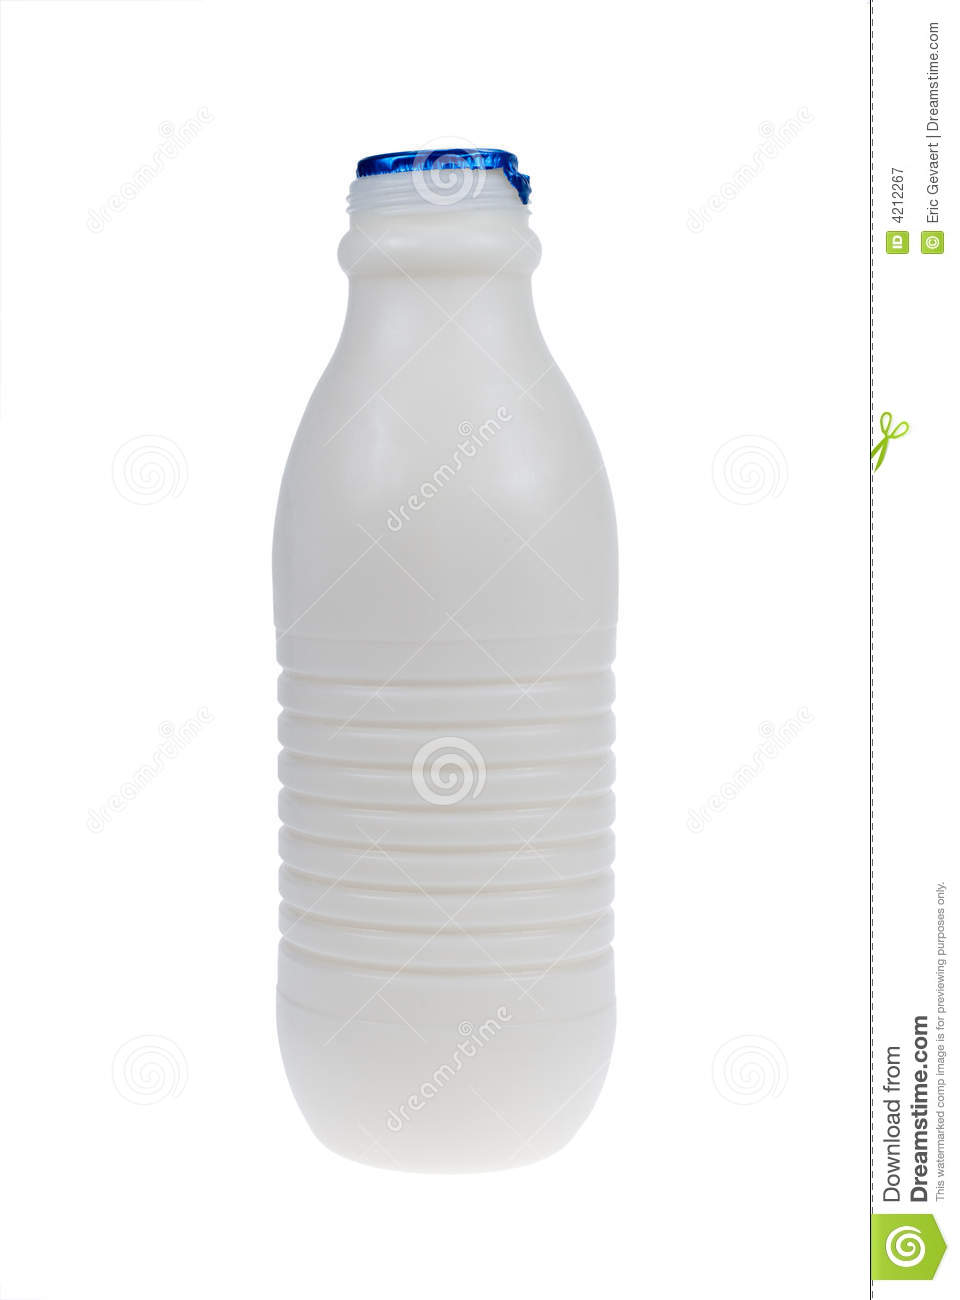 Plastic Bottle Of Milk Royalty Free Stock Photography - Image: 4212267